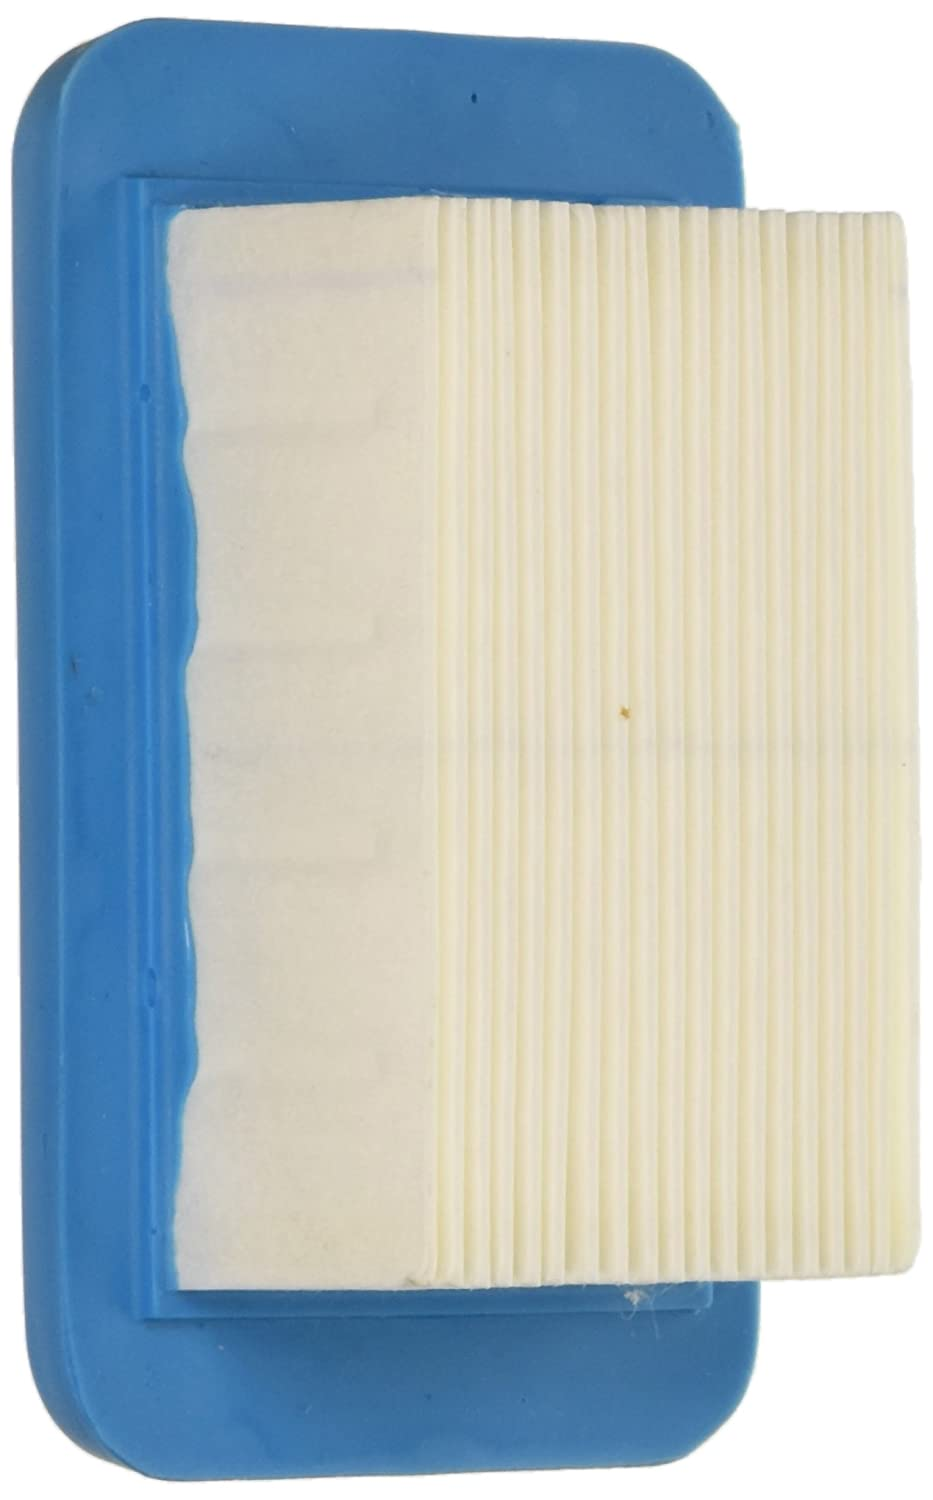 Stens 102-569 Air Filter Replaces Echo A226000032 A226000031